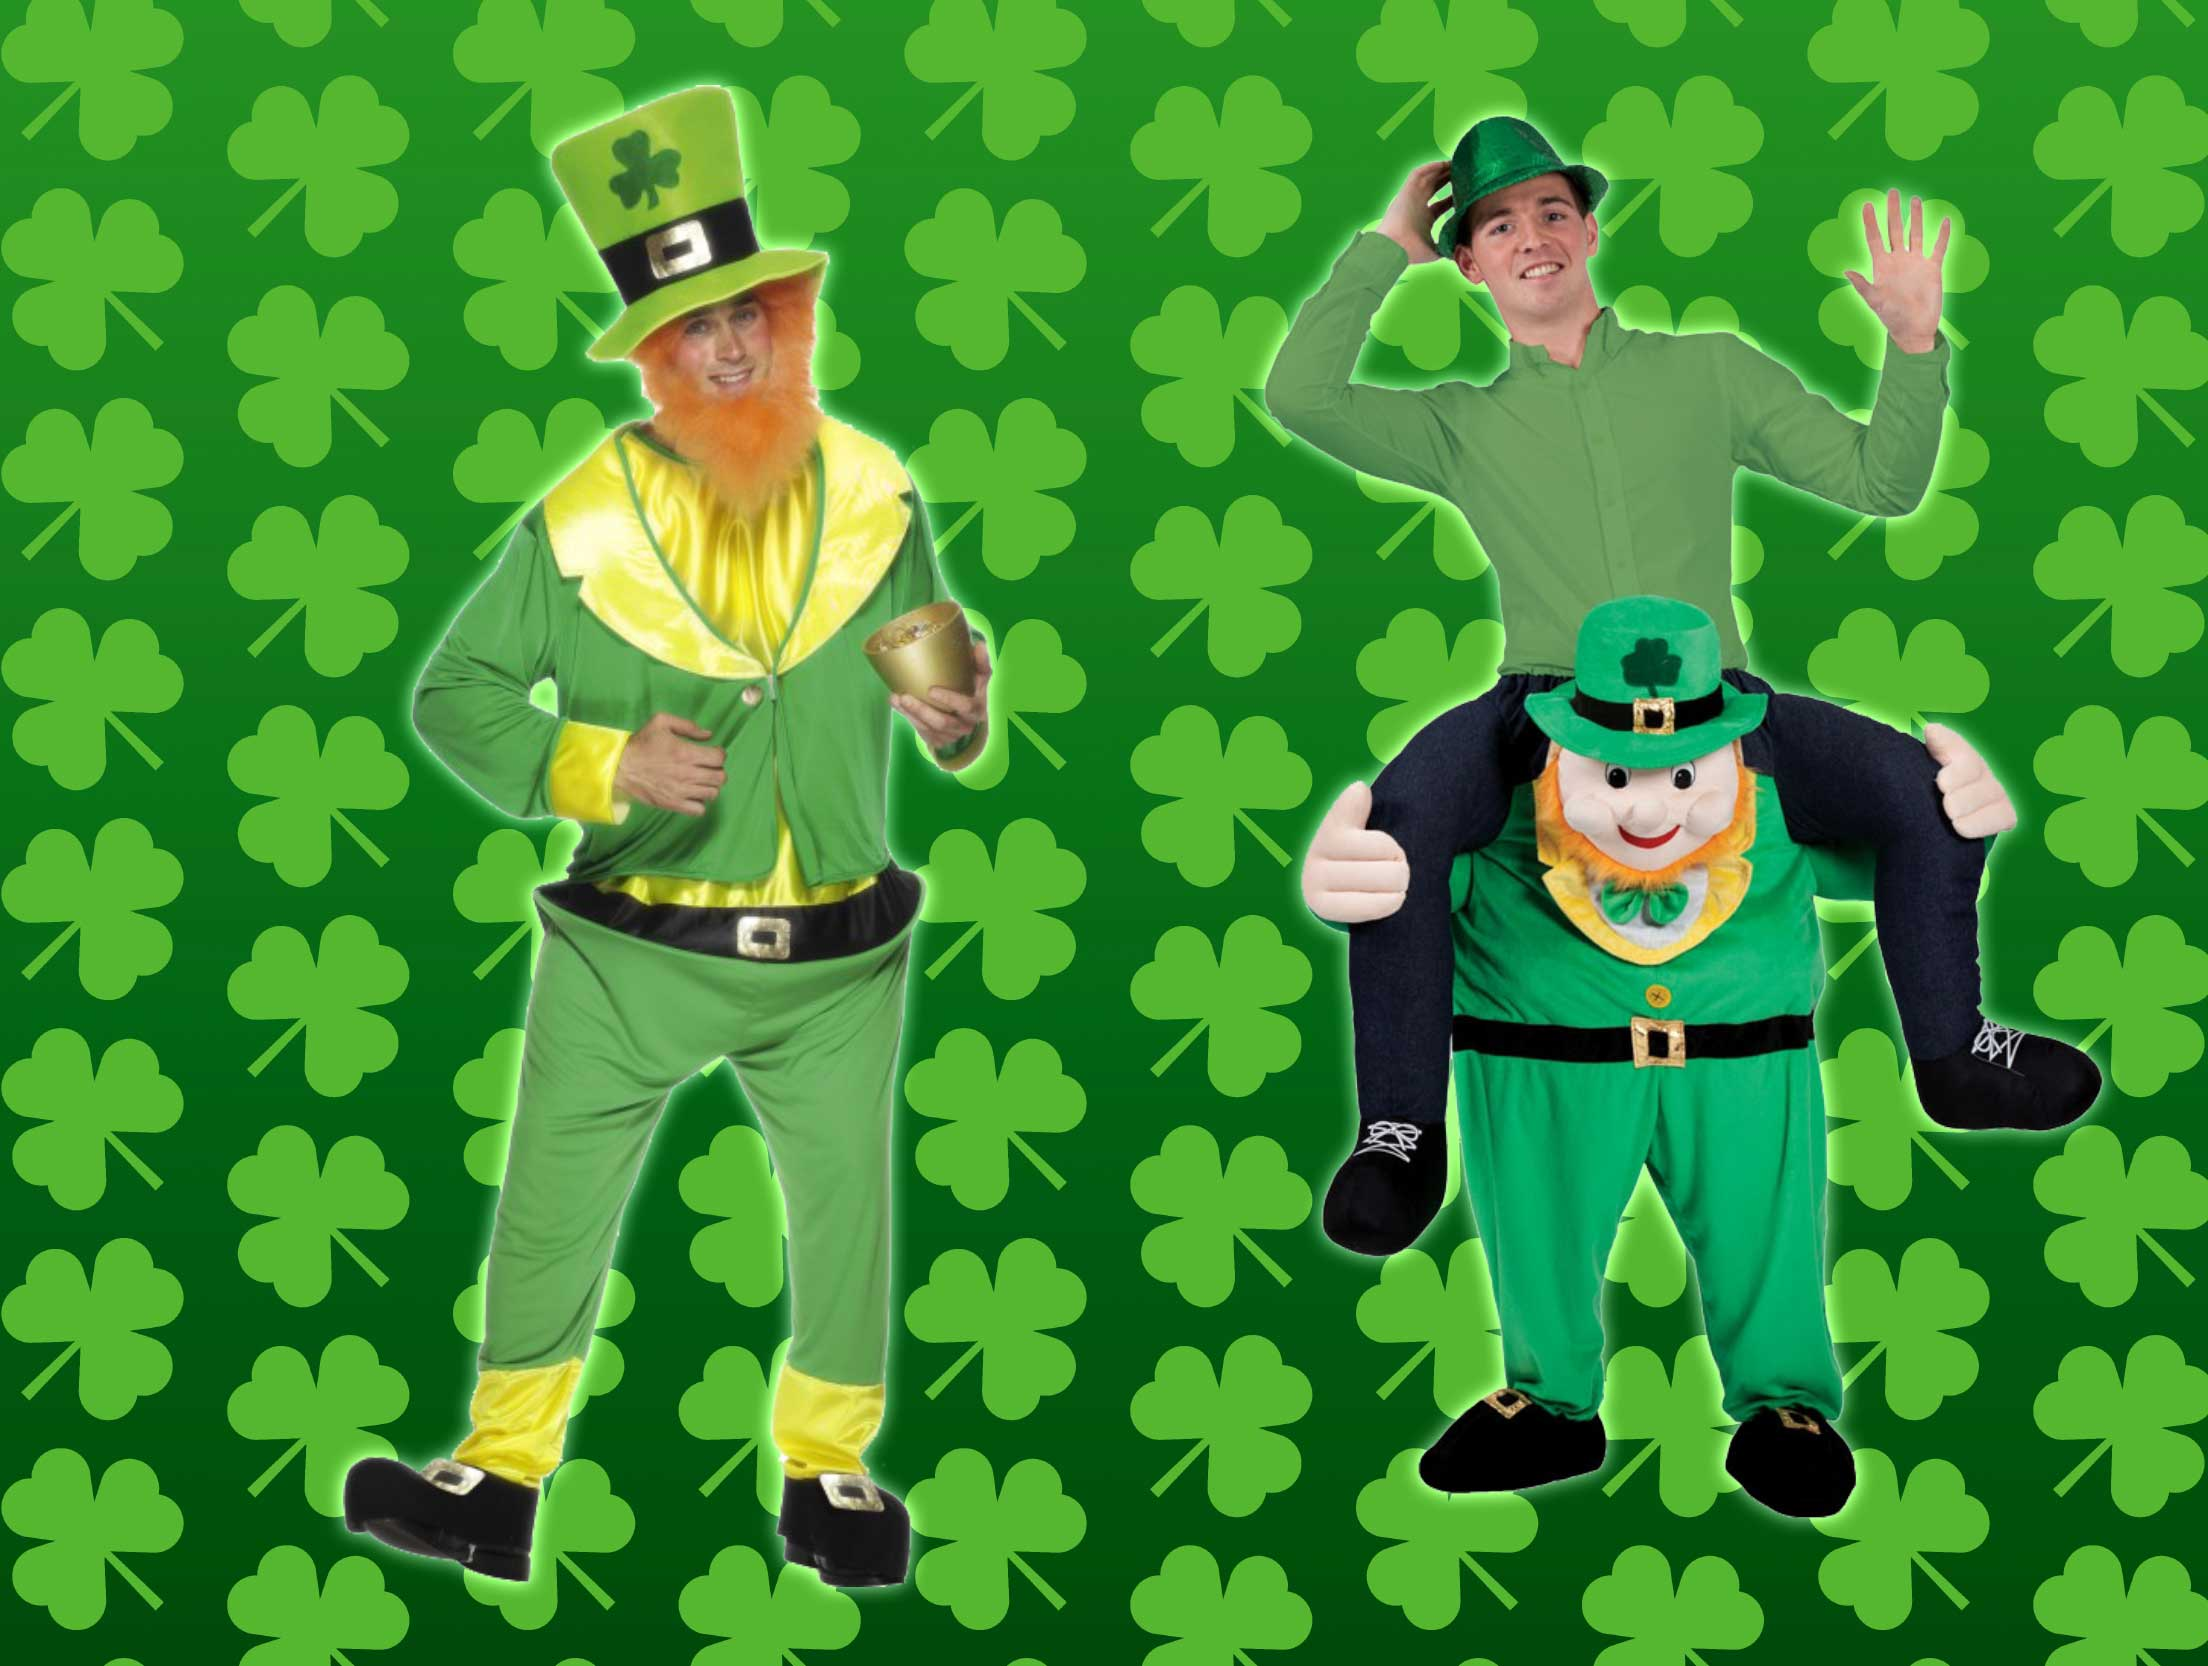 Leprechaun archives here at hollywood fancy dress we want to do all we can to make sure your day is the best and what does every irish festival never have enough of solutioingenieria Choice Image